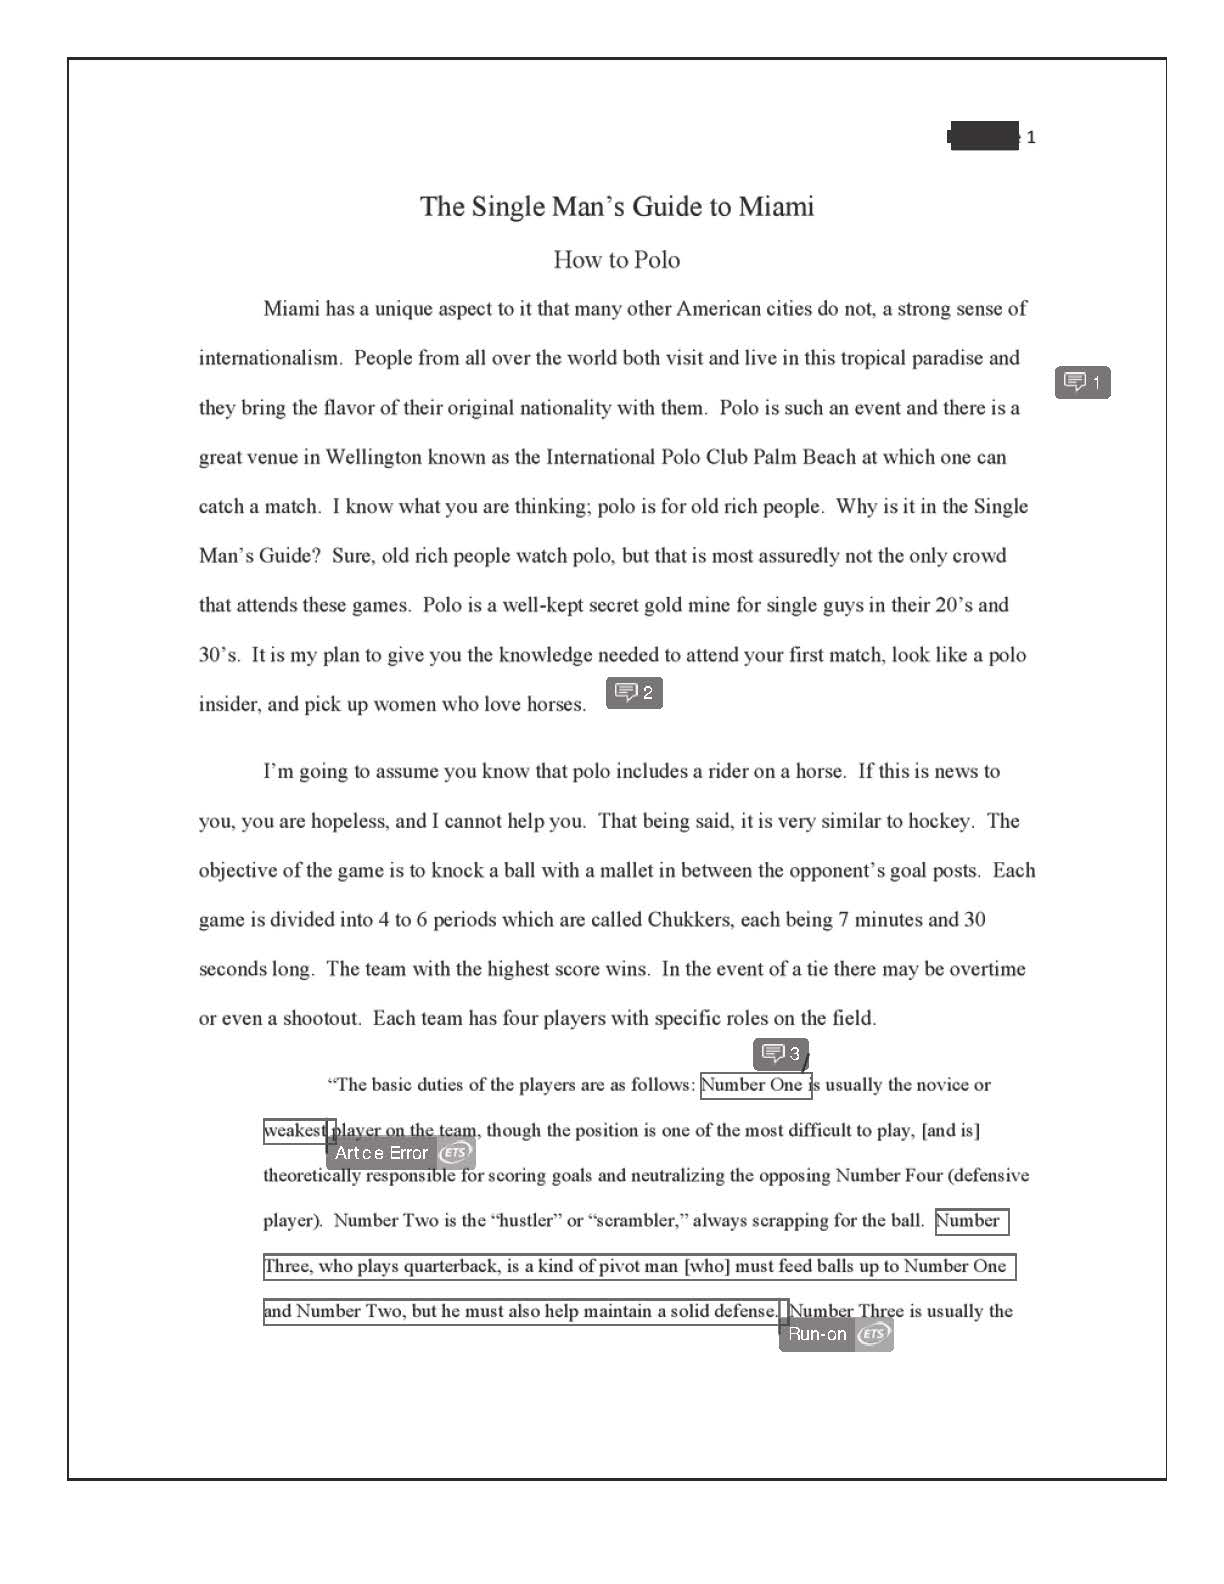 005 Informative Essay Topics Essays Sample Funny Argumentative For Middle School Final How To Polo Redacted P College Students Hilarious Good Remarkable 4th Grade Expository High 6th Graders Full